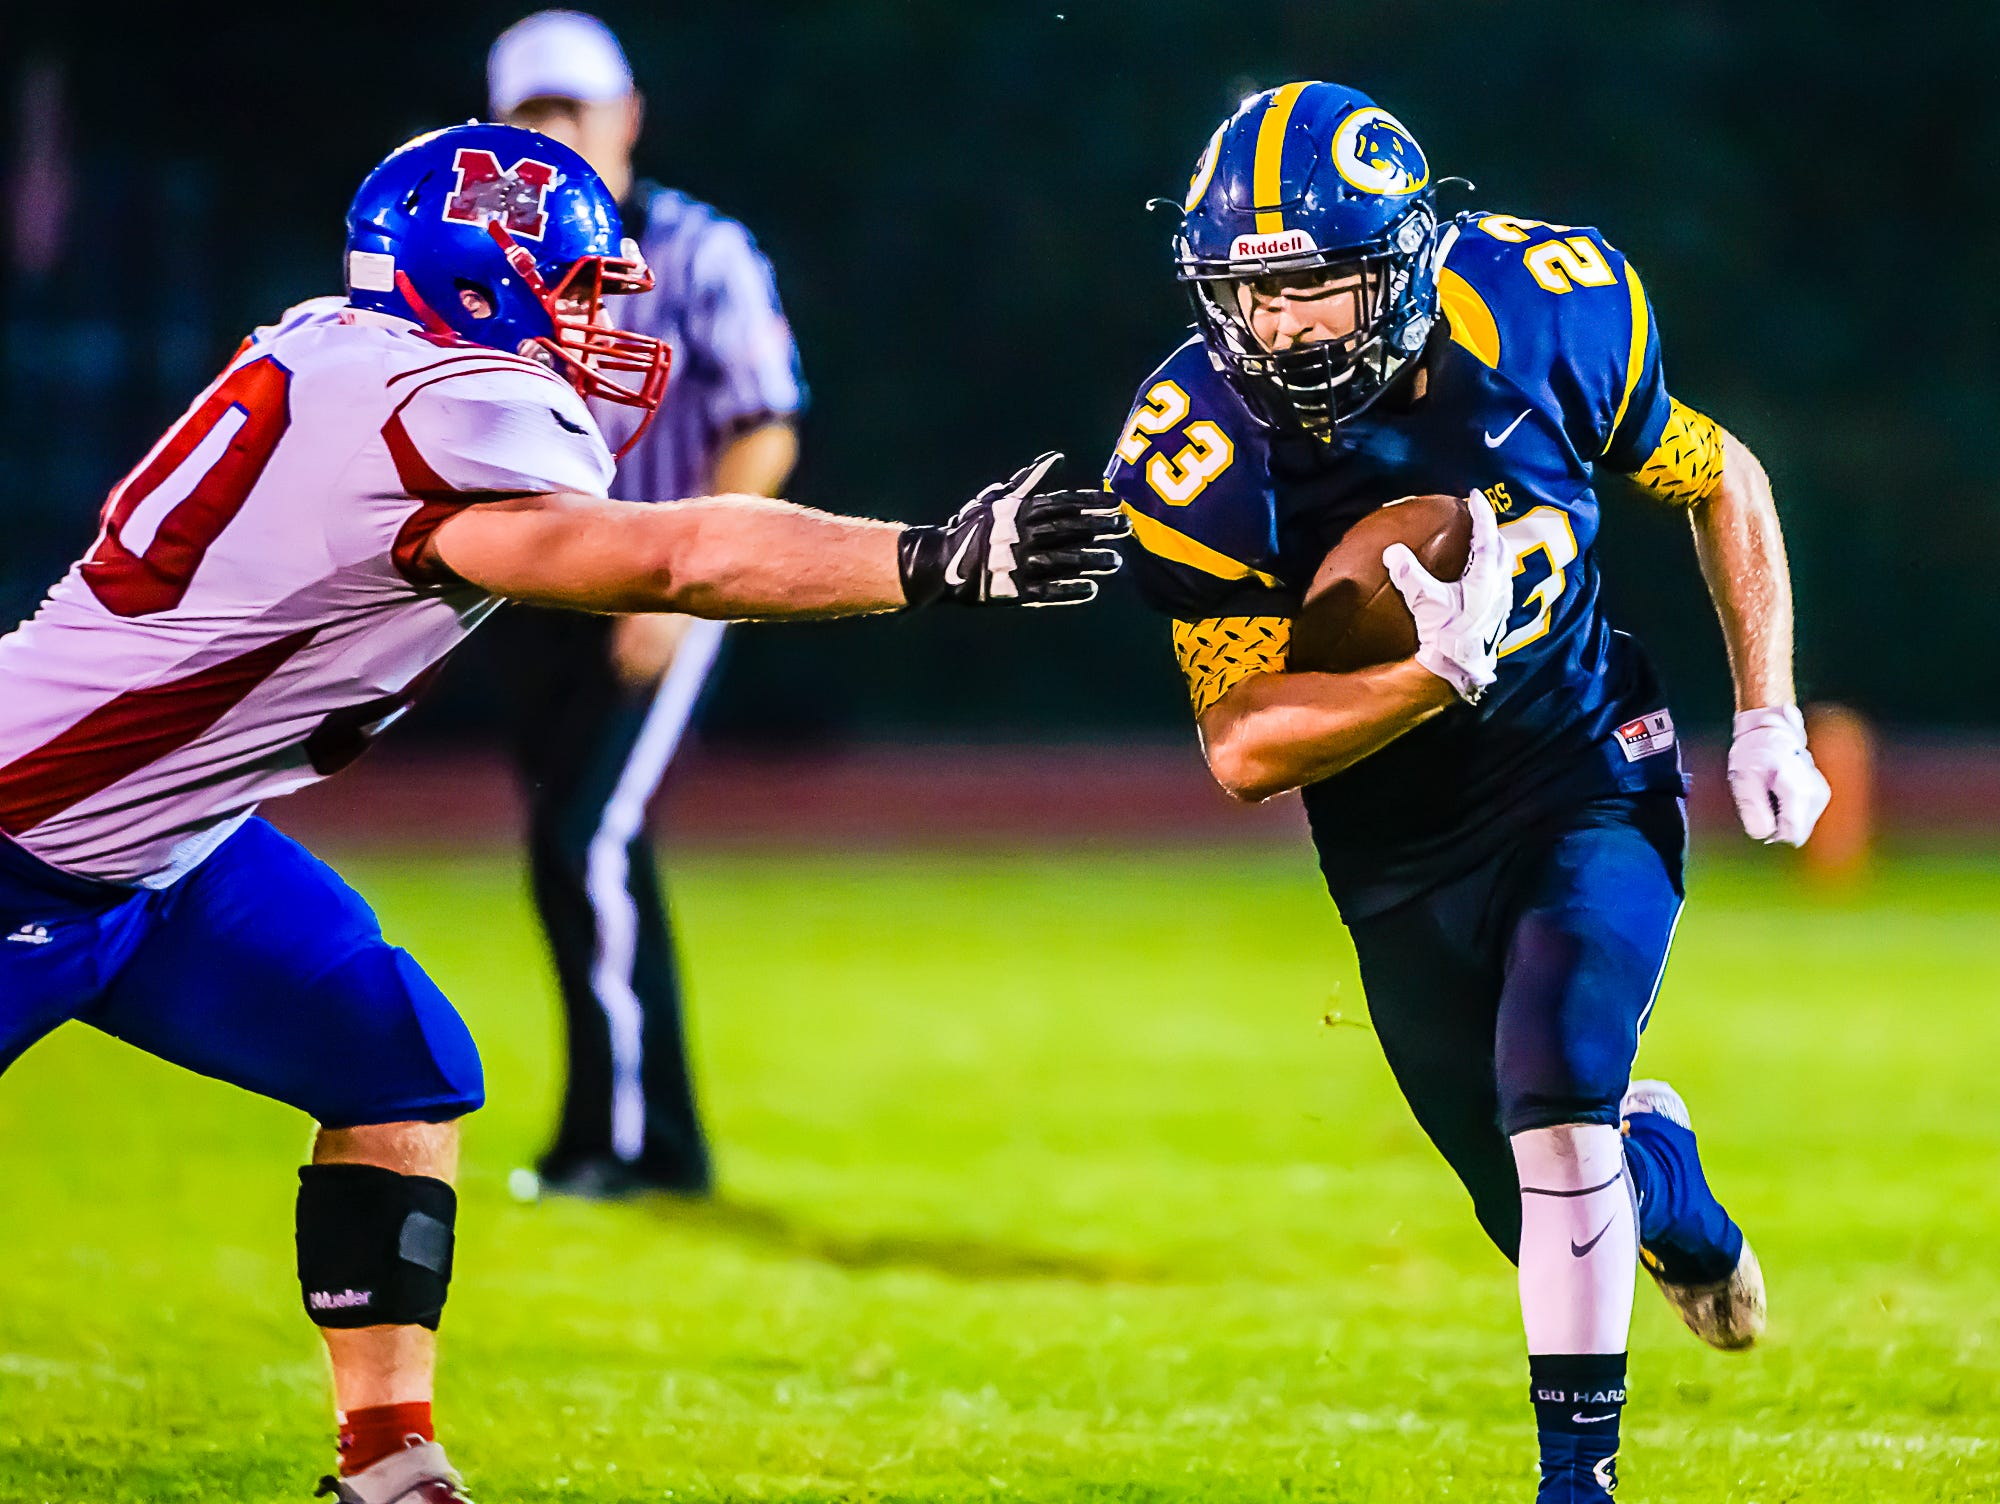 JD Ross runs past a Mason defender to the Mason 23 yard line for a first down late in the second quarter of a game Friday in DeWitt.